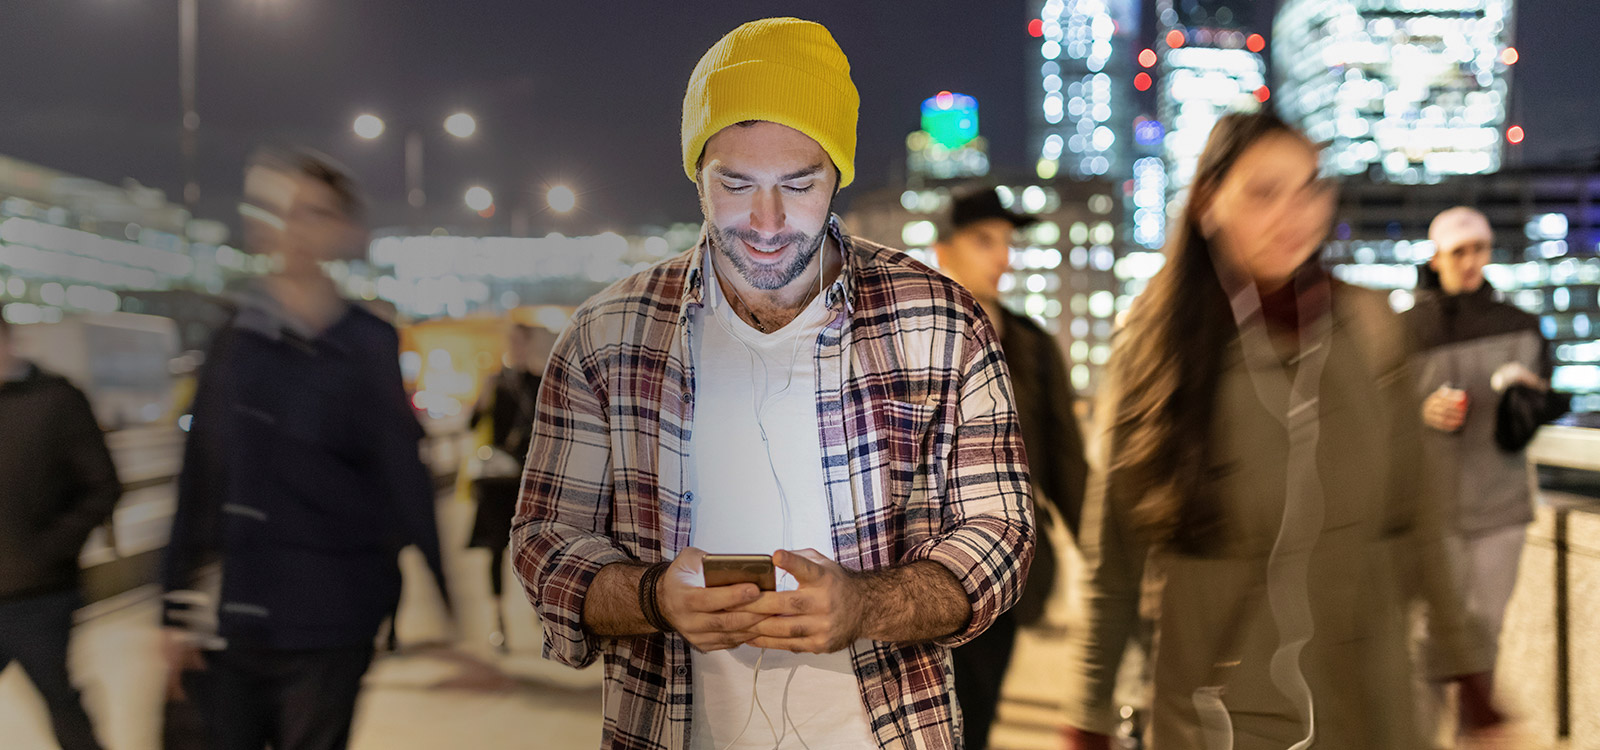 Smiling man looking at his phone by night with blurred people passing nearby